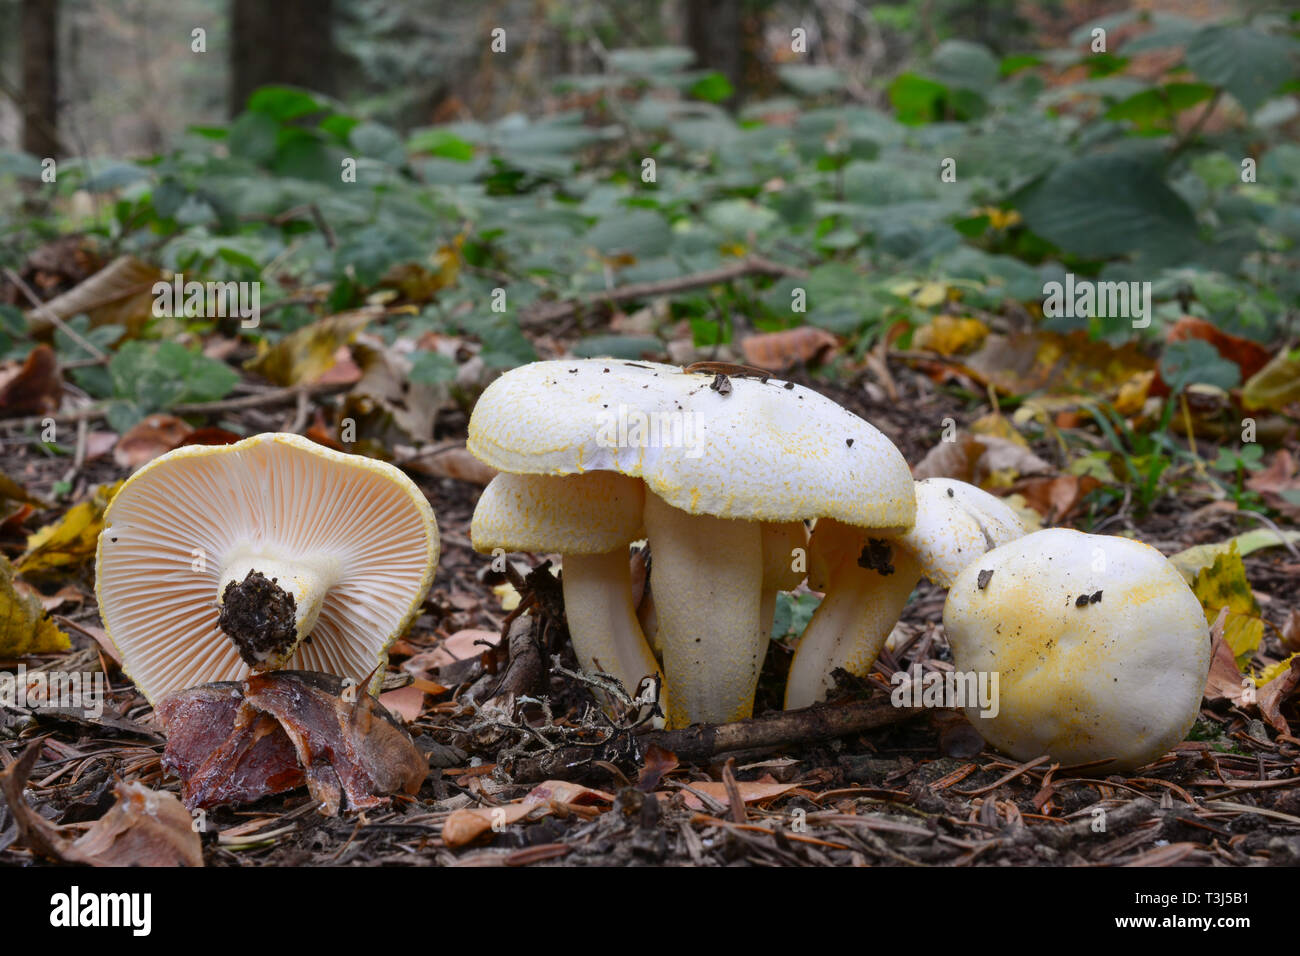 Hygrophorus chrysodon mushrooms, or Gold flecked woodwax mushrooms in autumn mountain forest - Stock Image